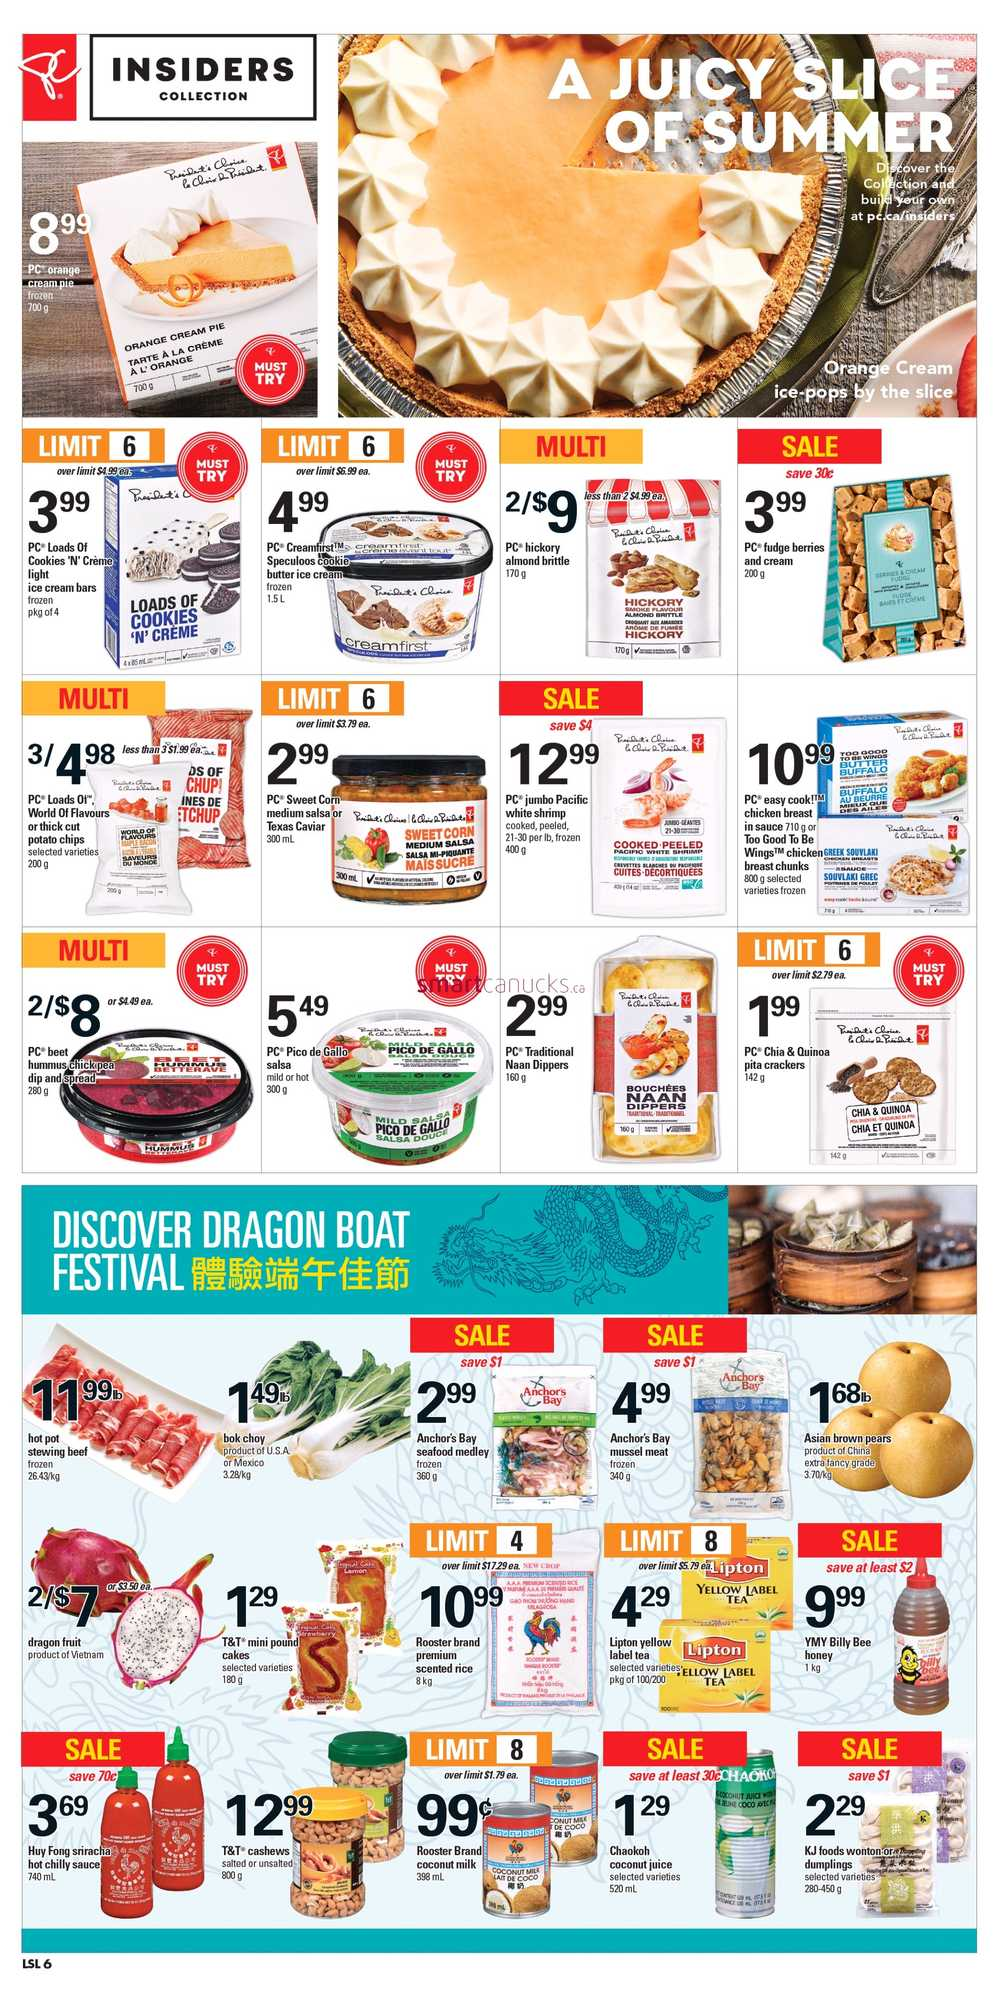 image about Grocerysmarts.com Printable Grocery Planner named Coupon codes ottawa grocery suppliers : Coupon favourable for one particular free of charge